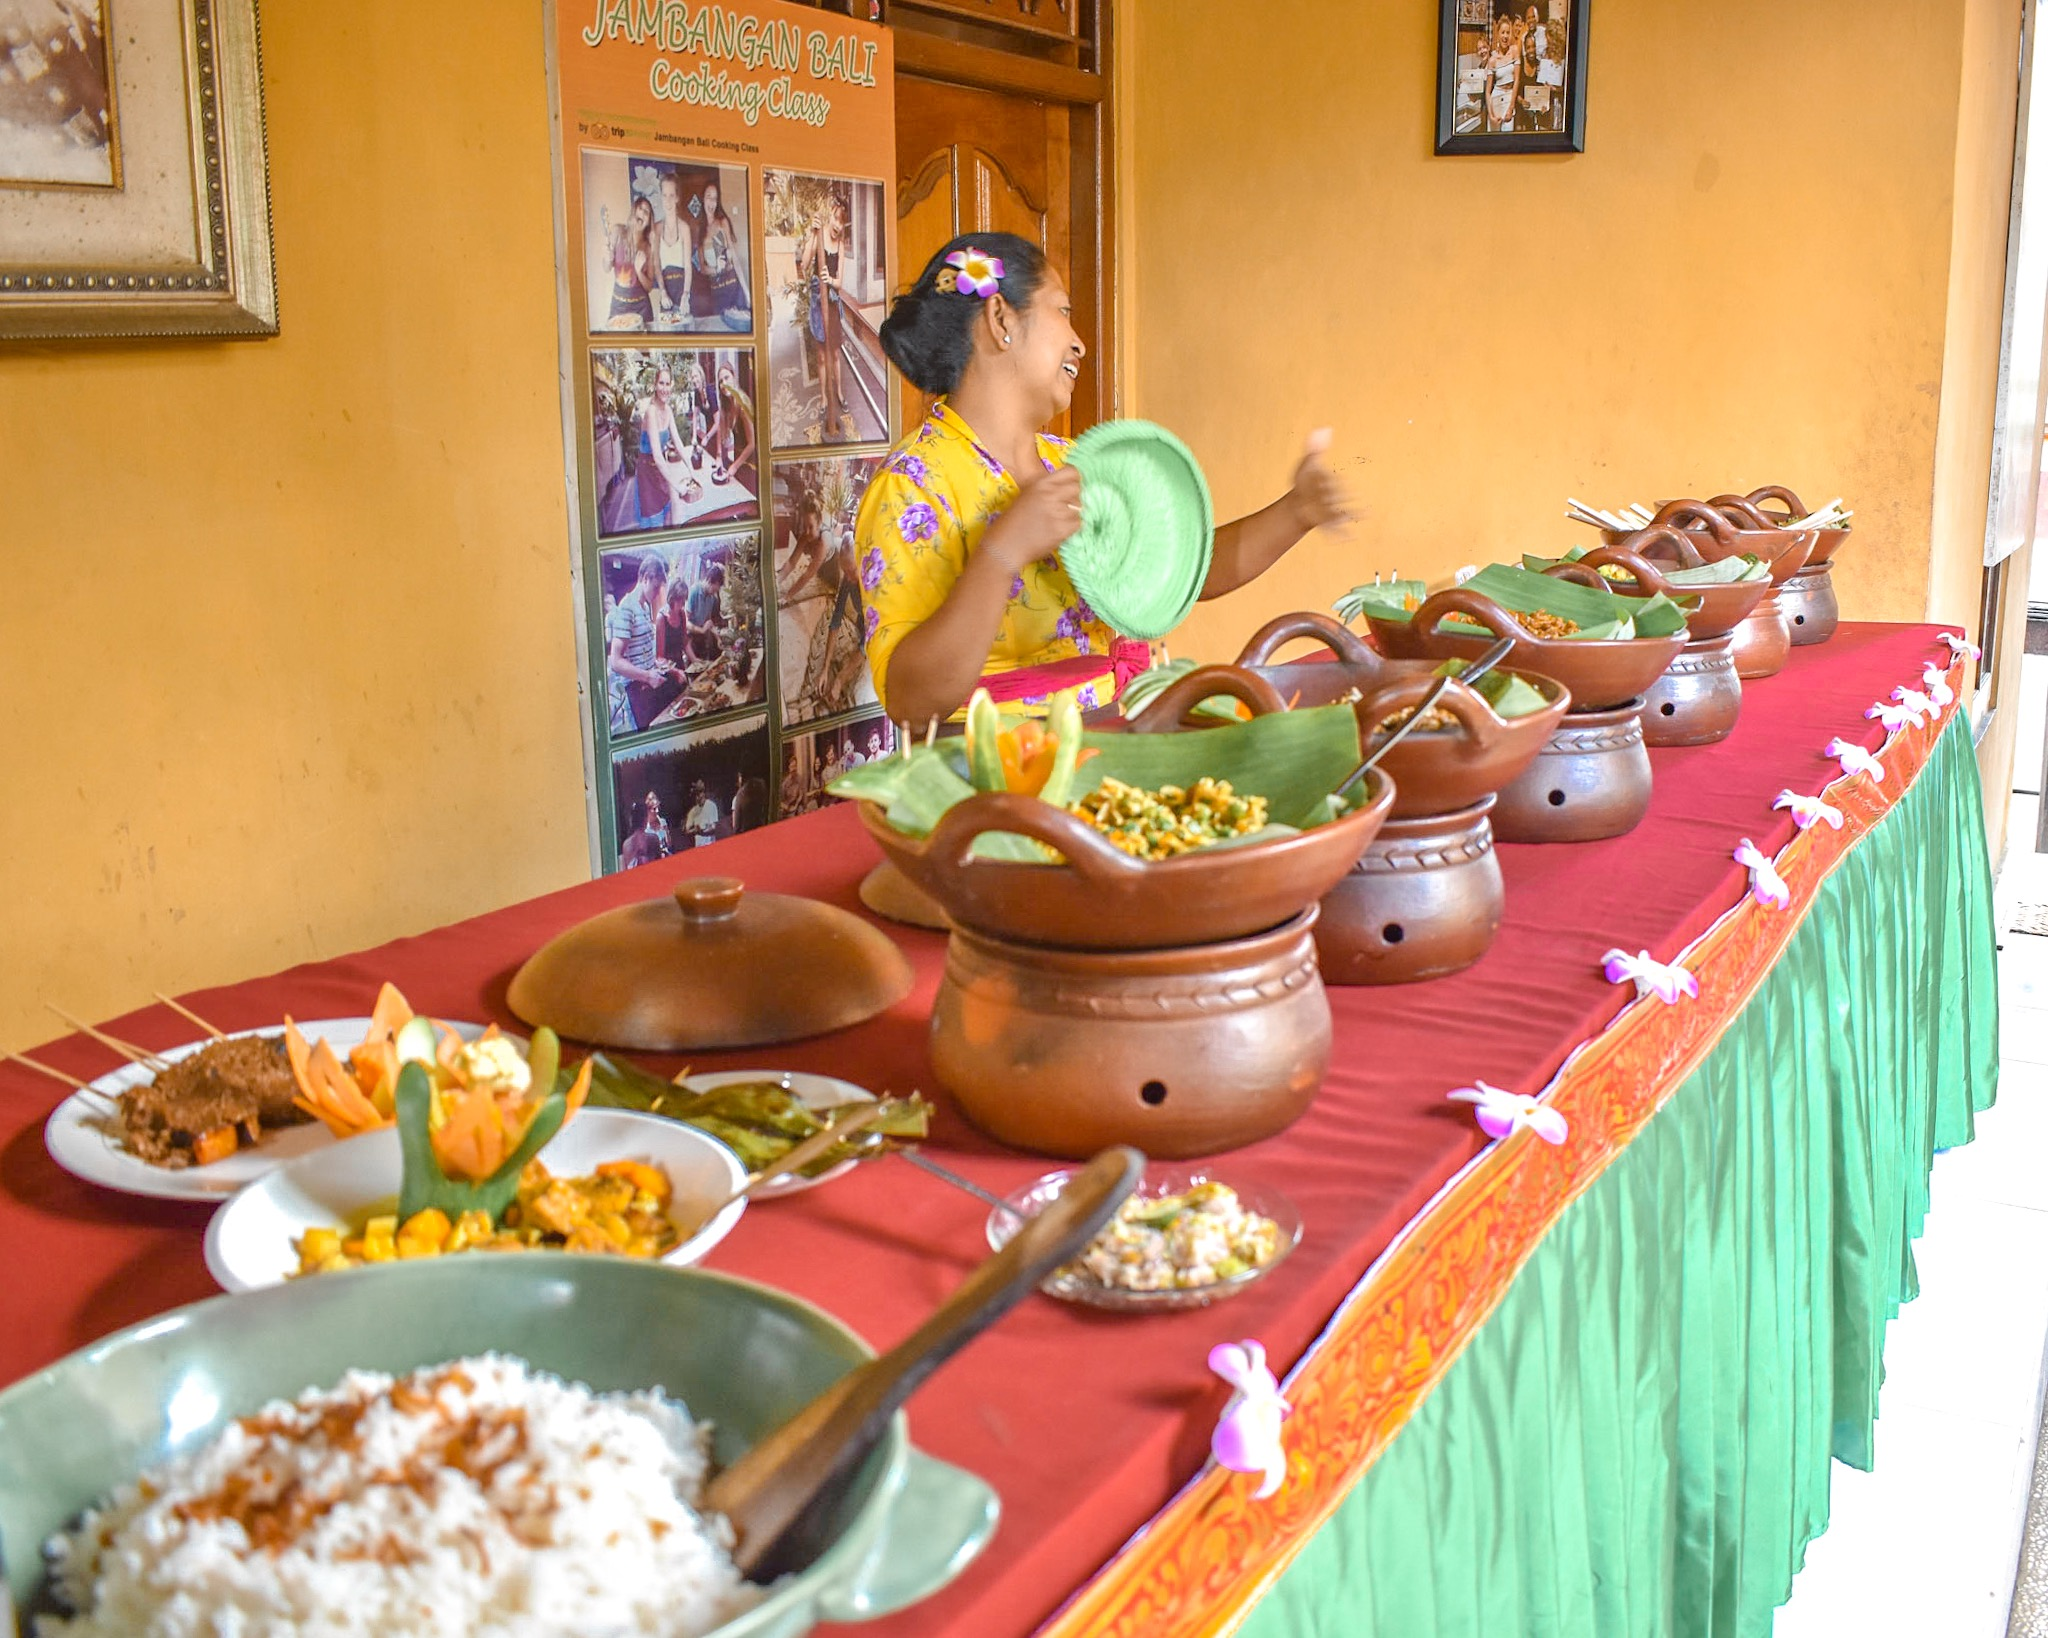 All the Food Made at the Jambangan Bali Cooking Class